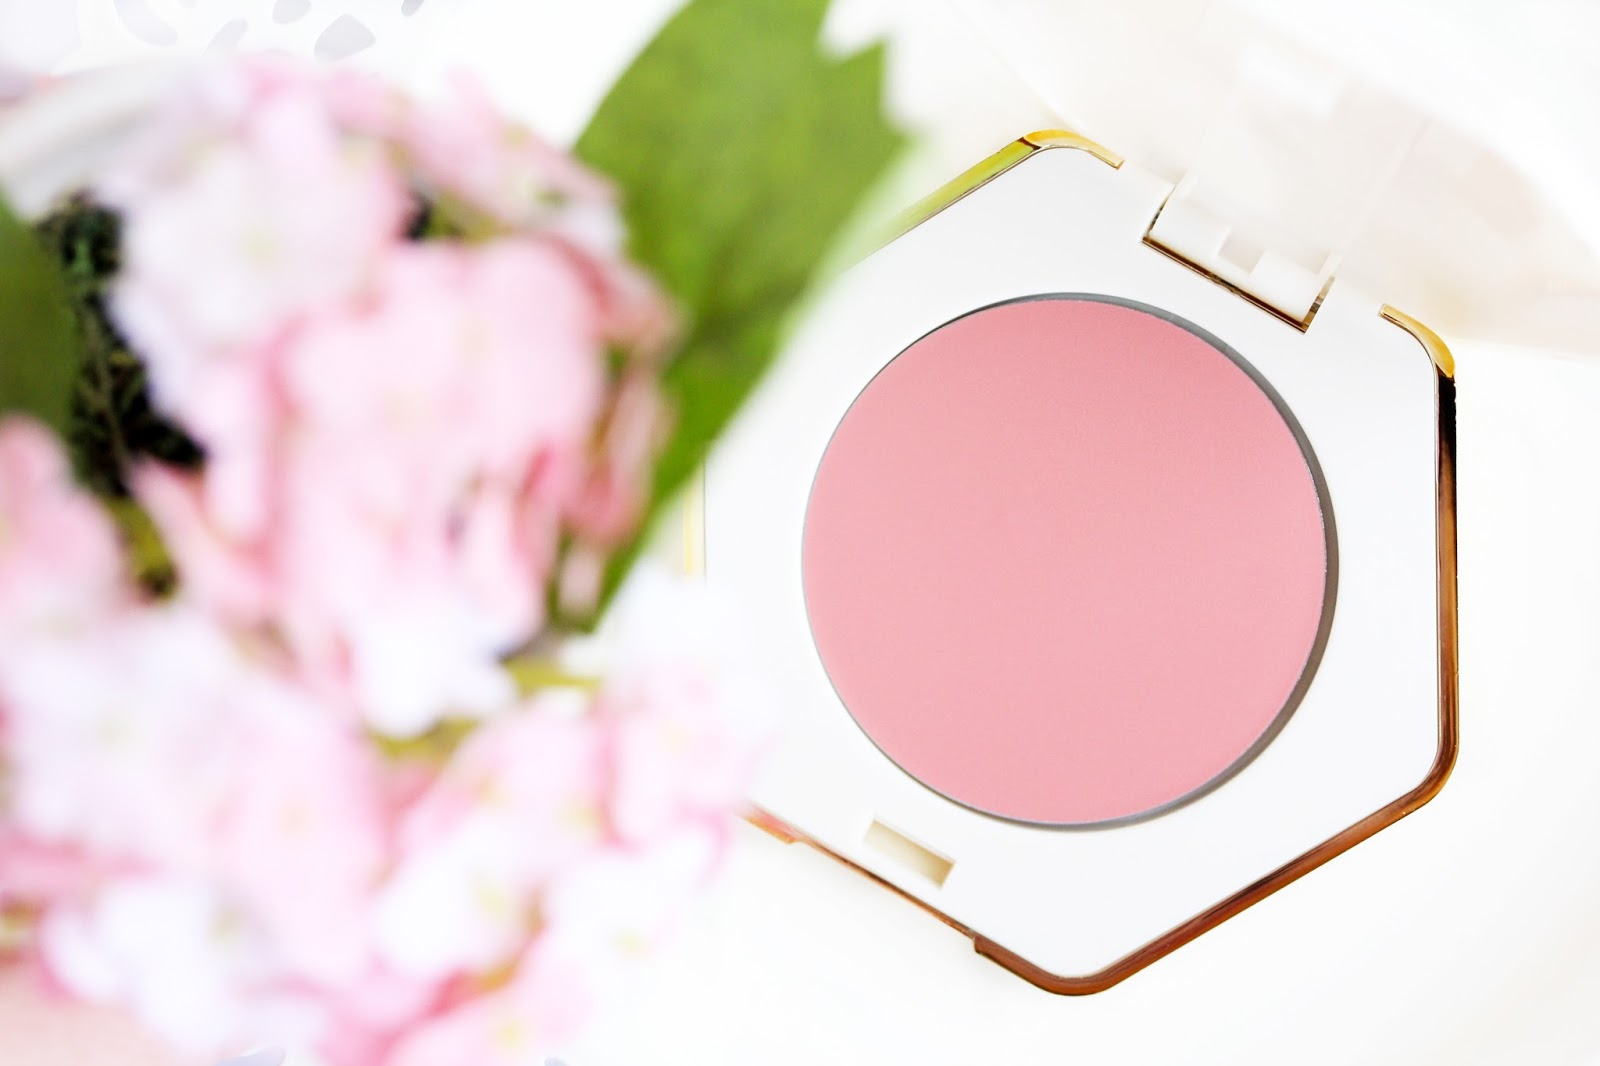 H&M Pure Velvet Cream Blush in Dusty Rose